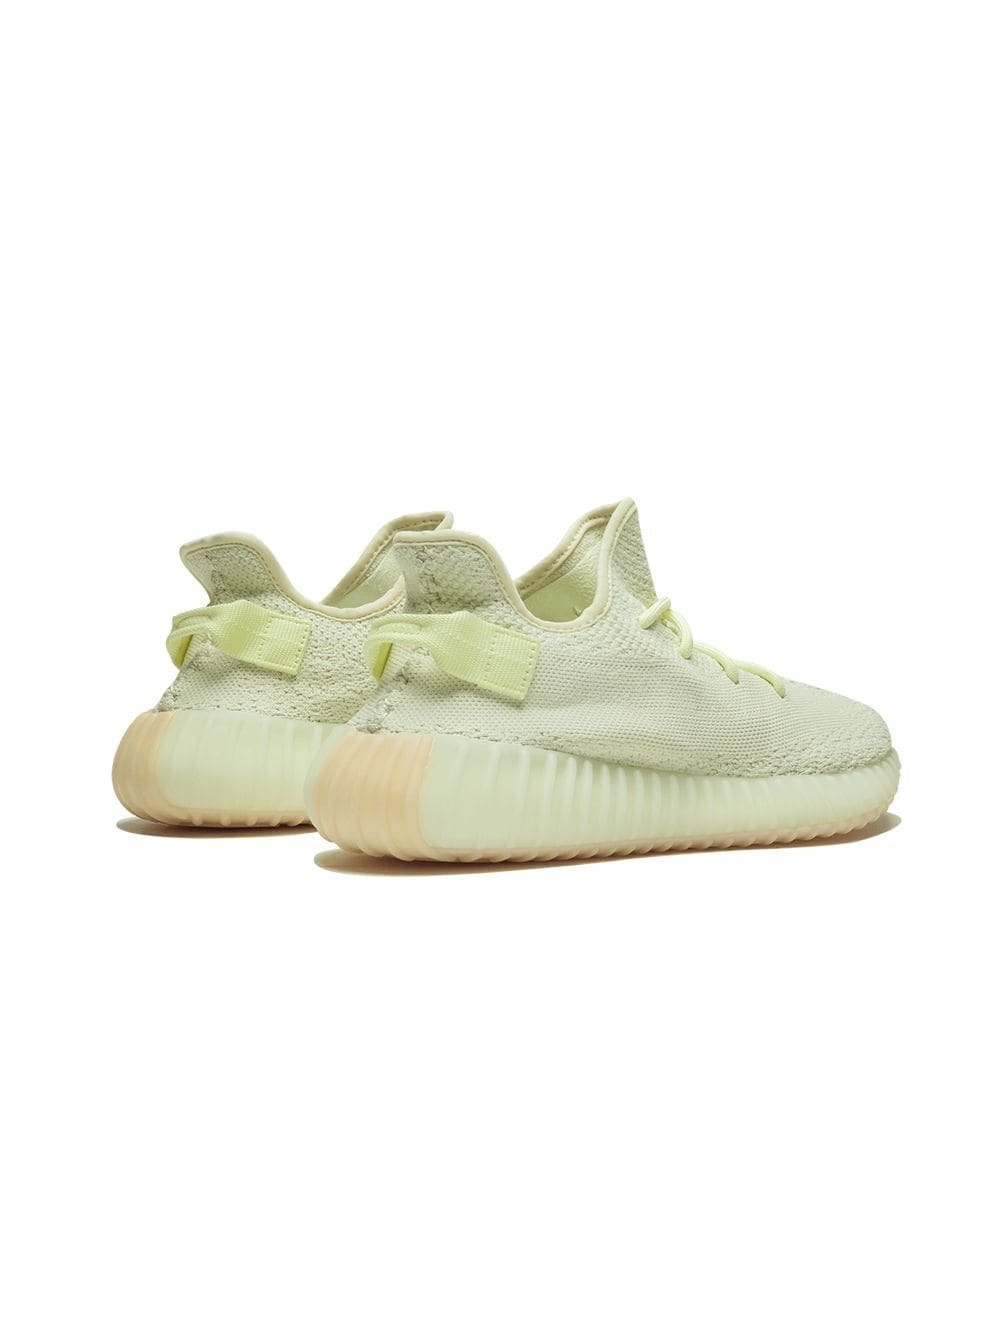 021e171a5 Yeezy Adidas X Boost 350 V2 Sneakers